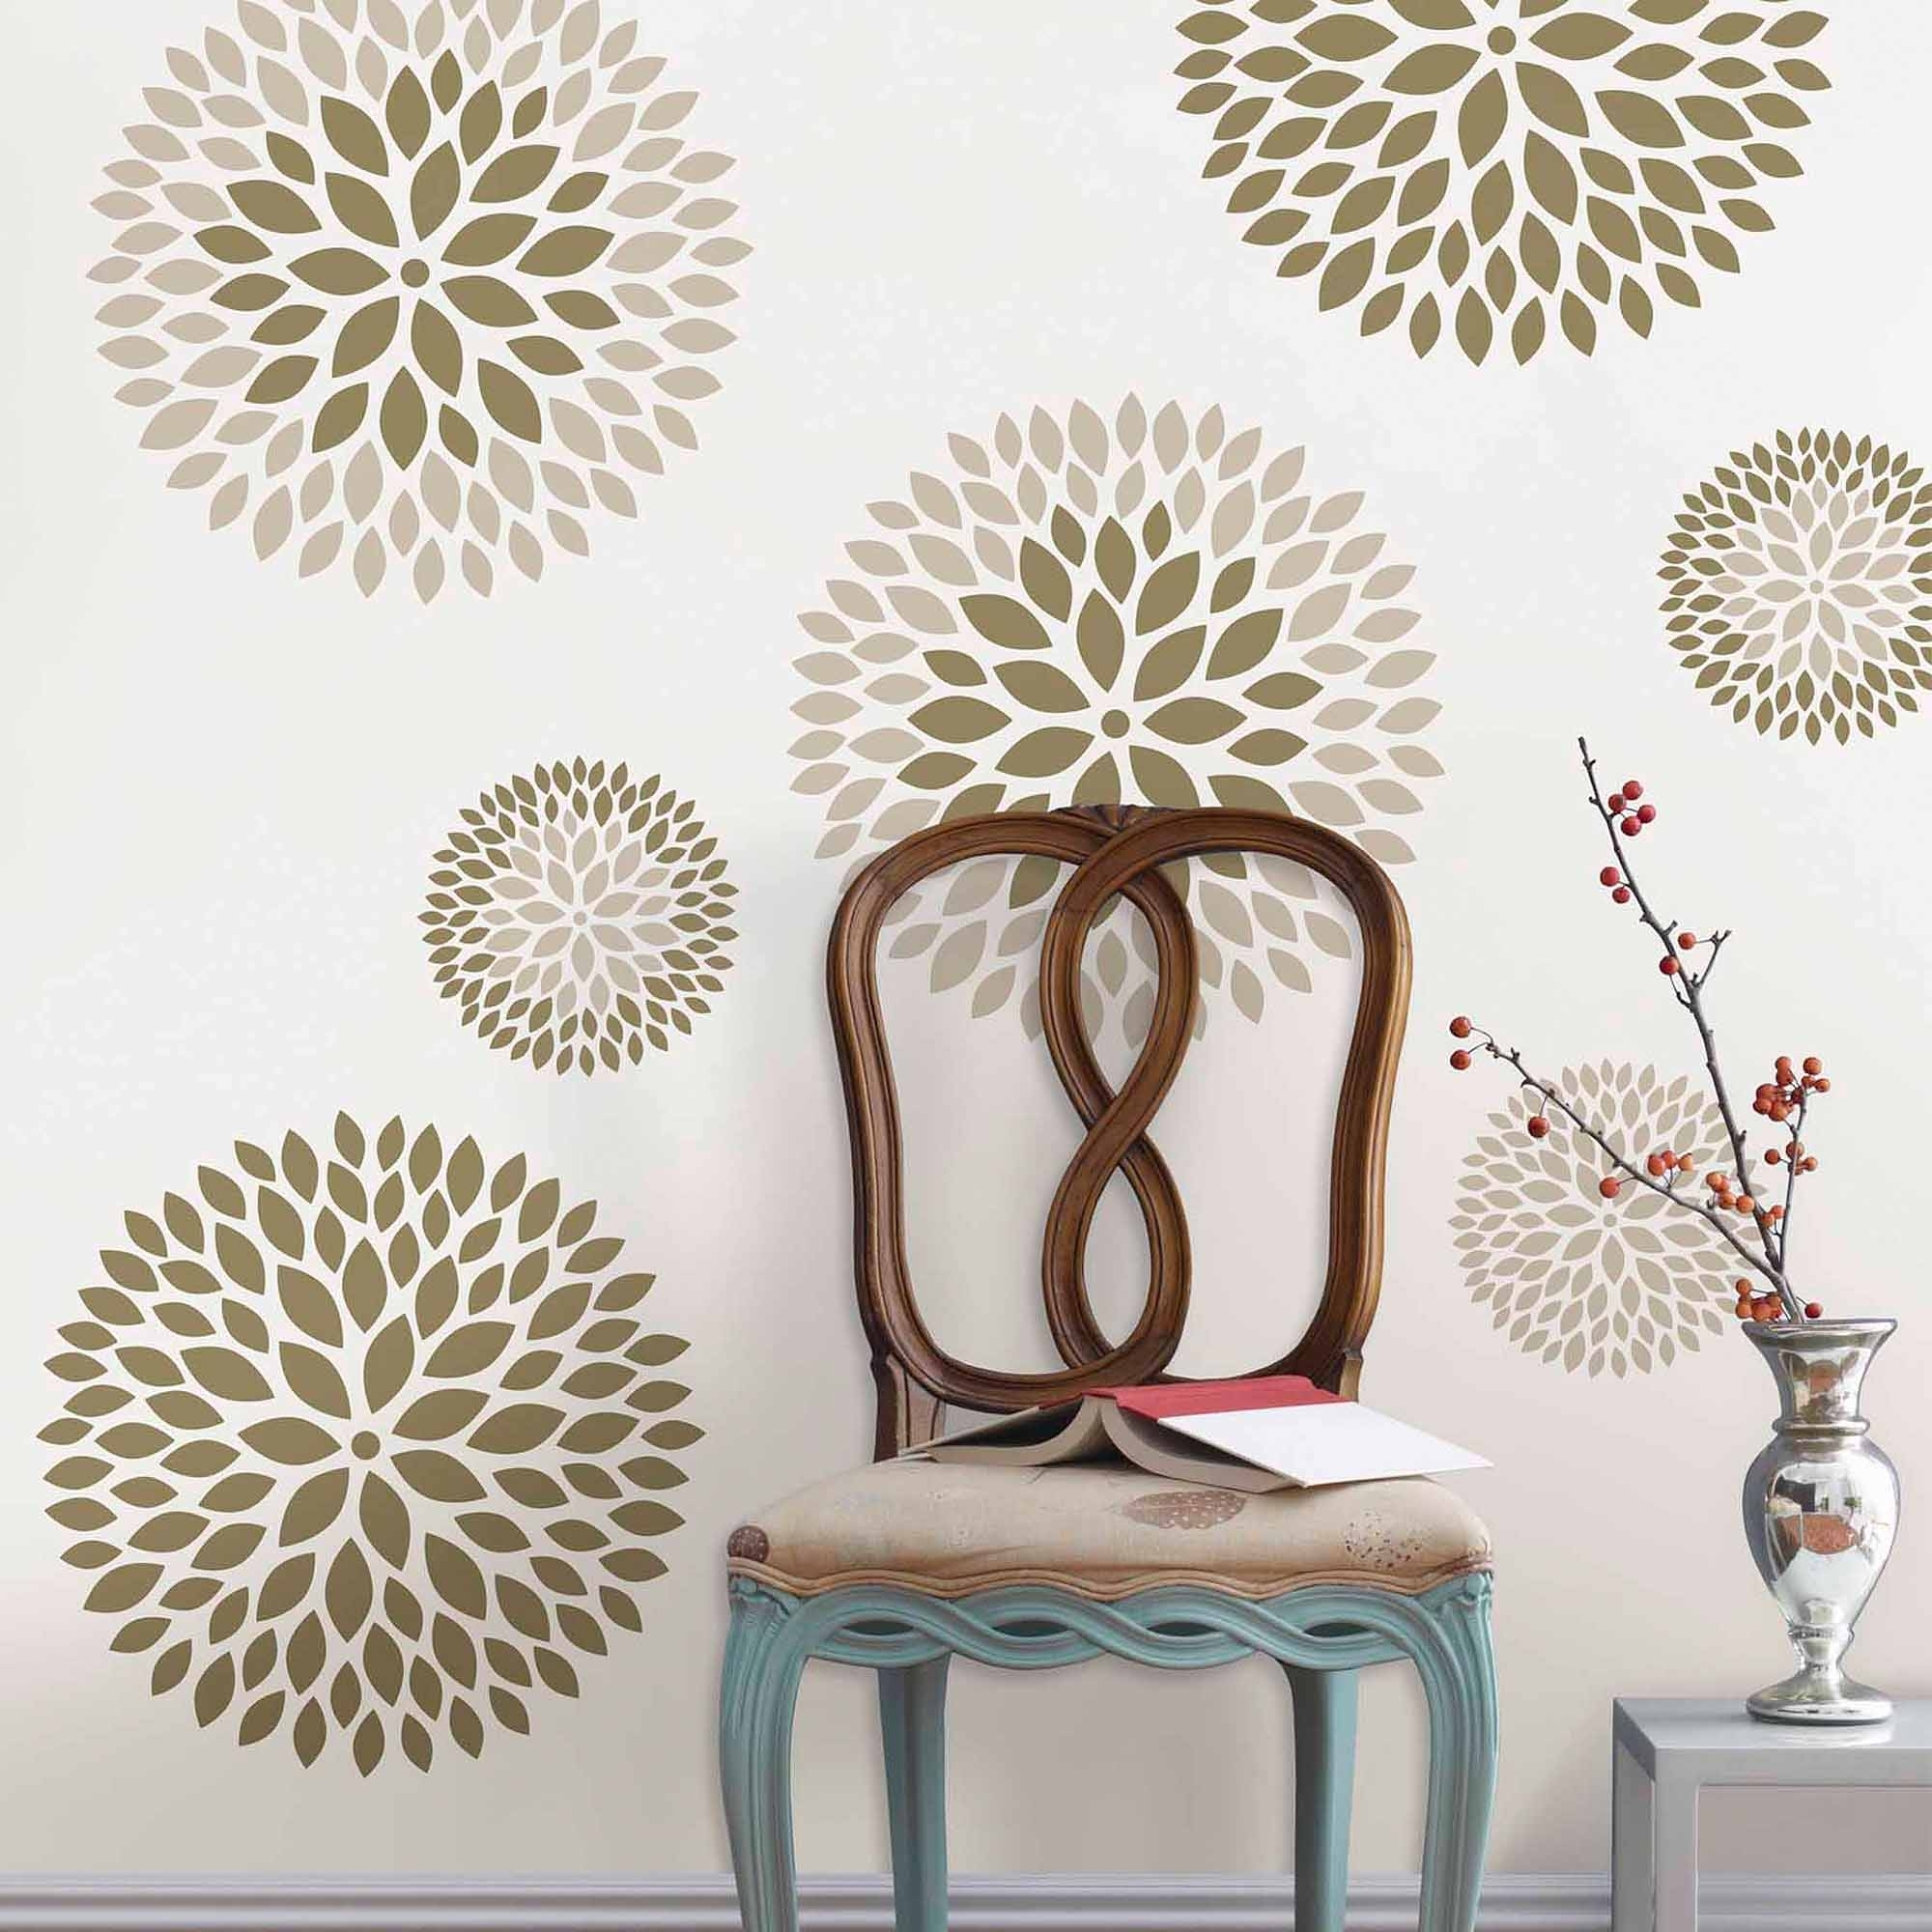 Well Liked Wallpops Chrysanthemum Wall Art Decals Kit – Walmart Regarding Wall Art At Walmart (View 15 of 15)